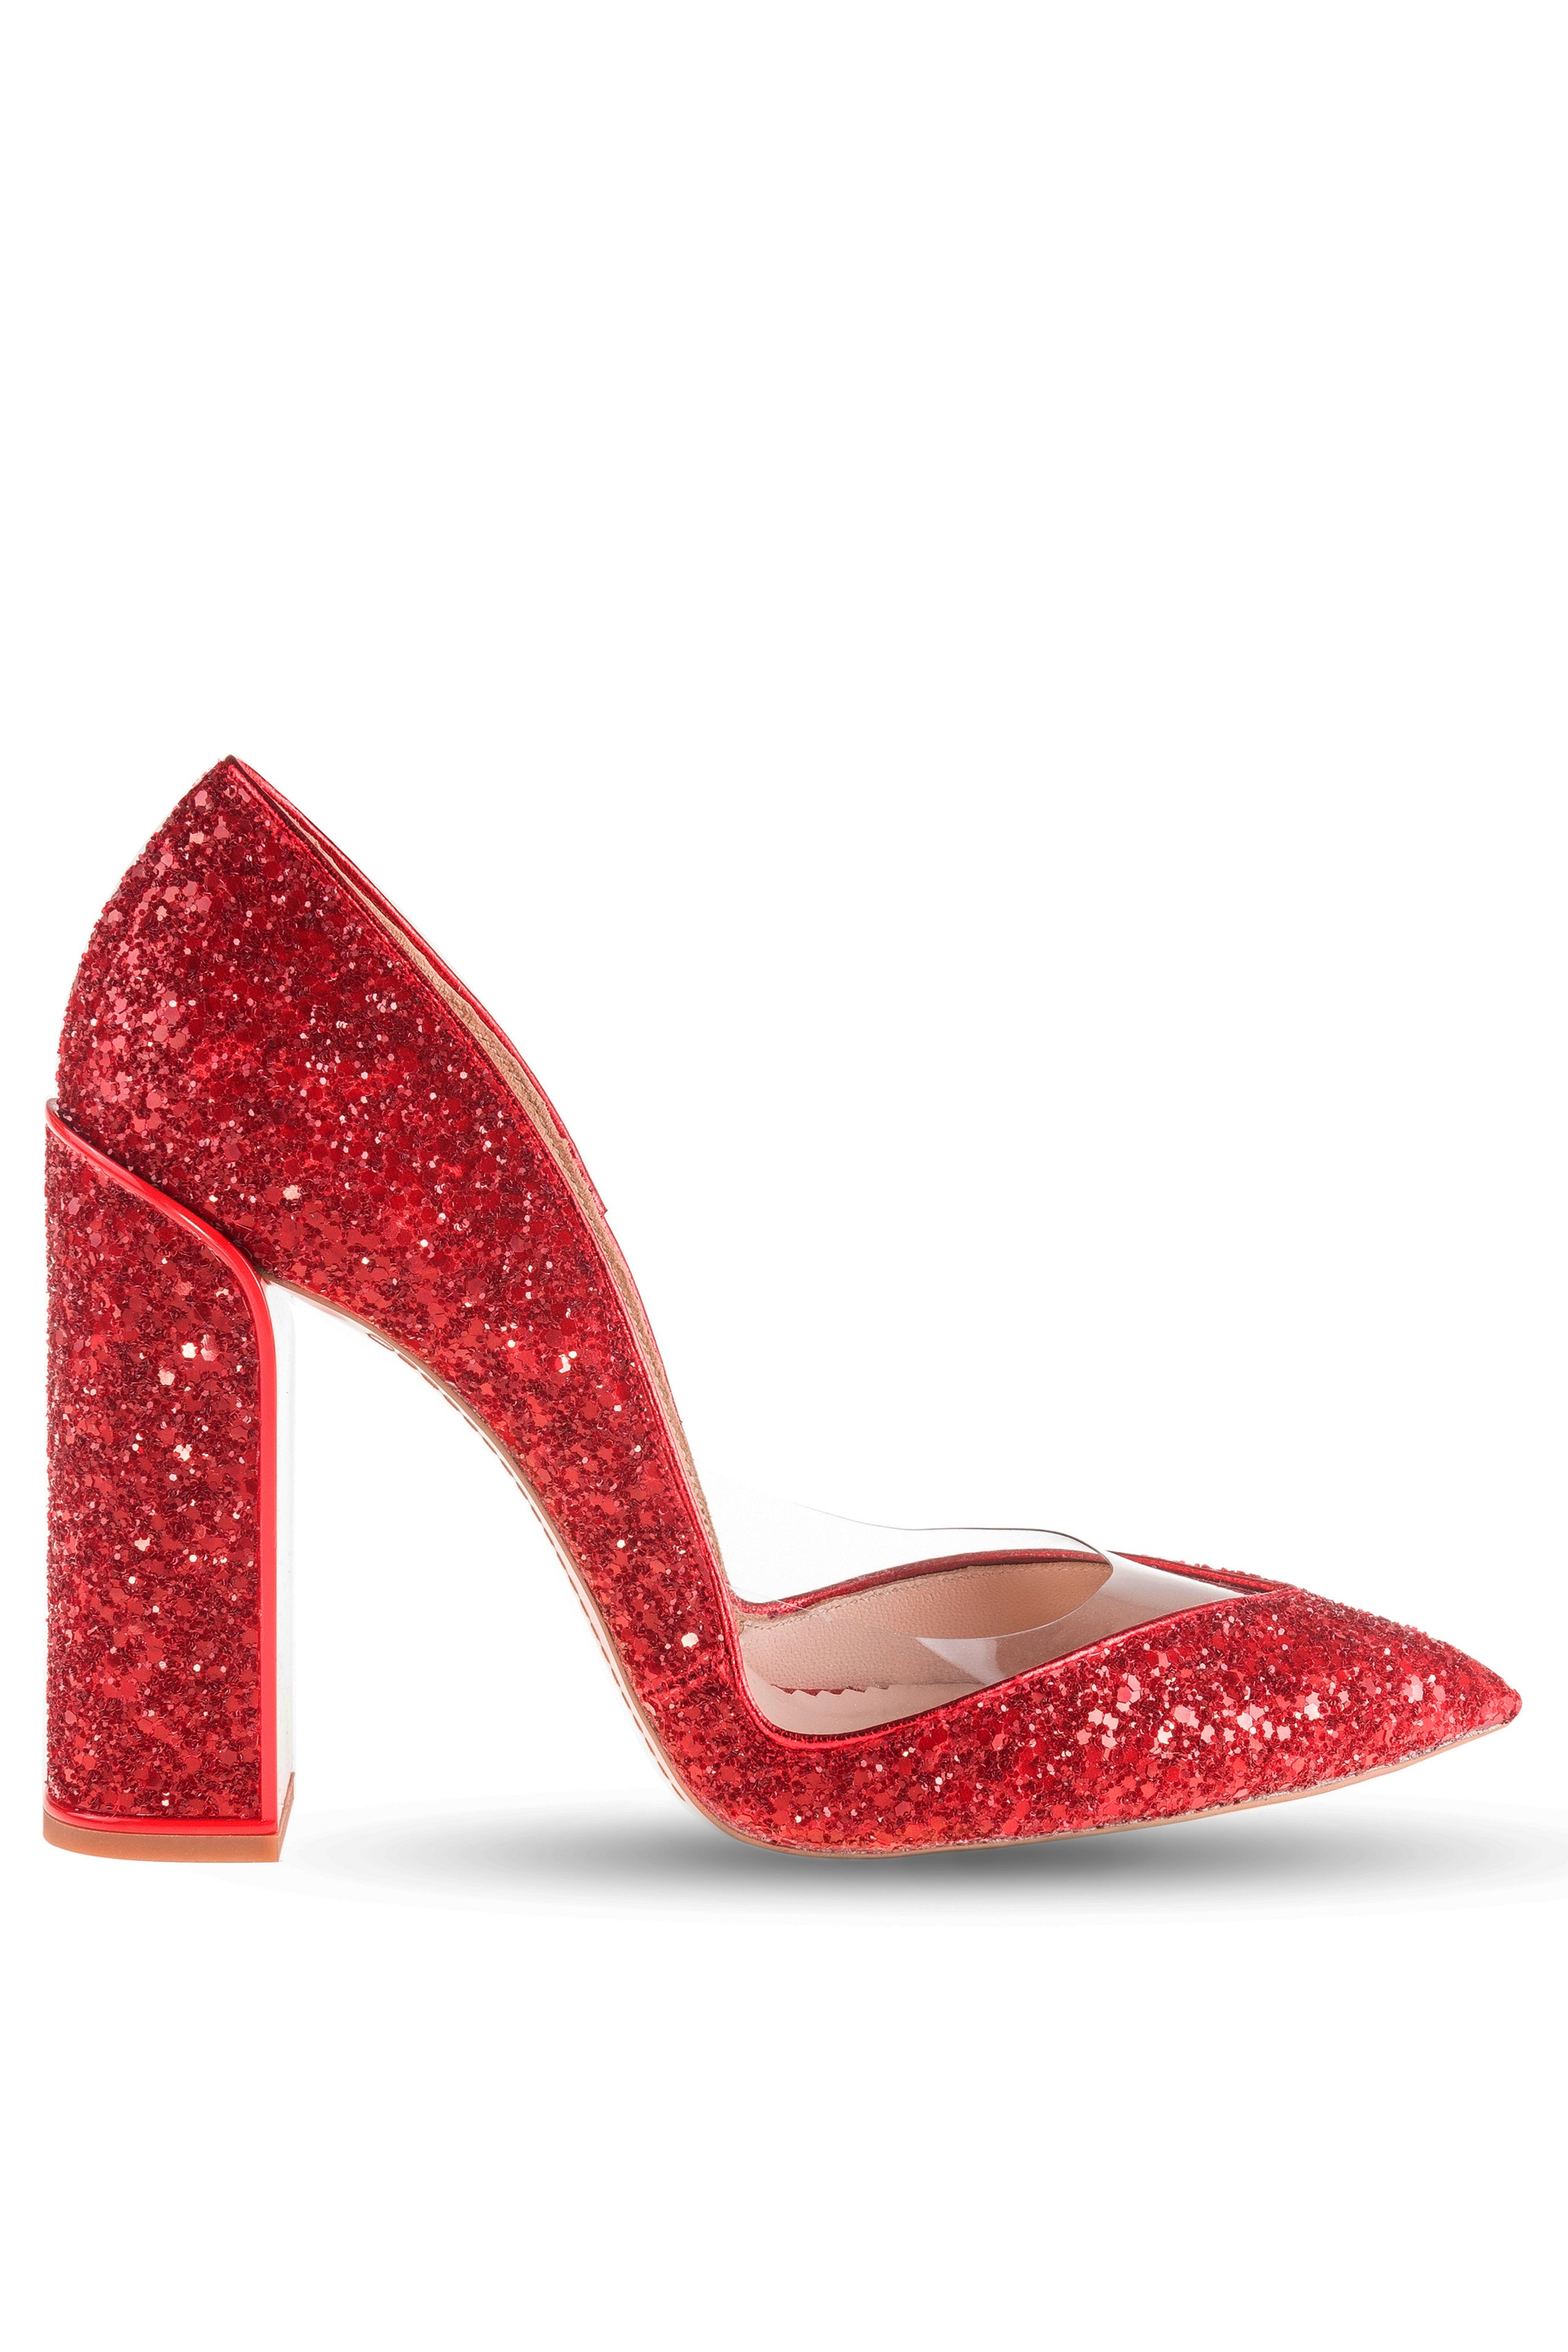 Product Details Red Glitter Vision Pumps Mihaialbucom Fashion Shoes Gliter Heels Romanian Designer Online Store